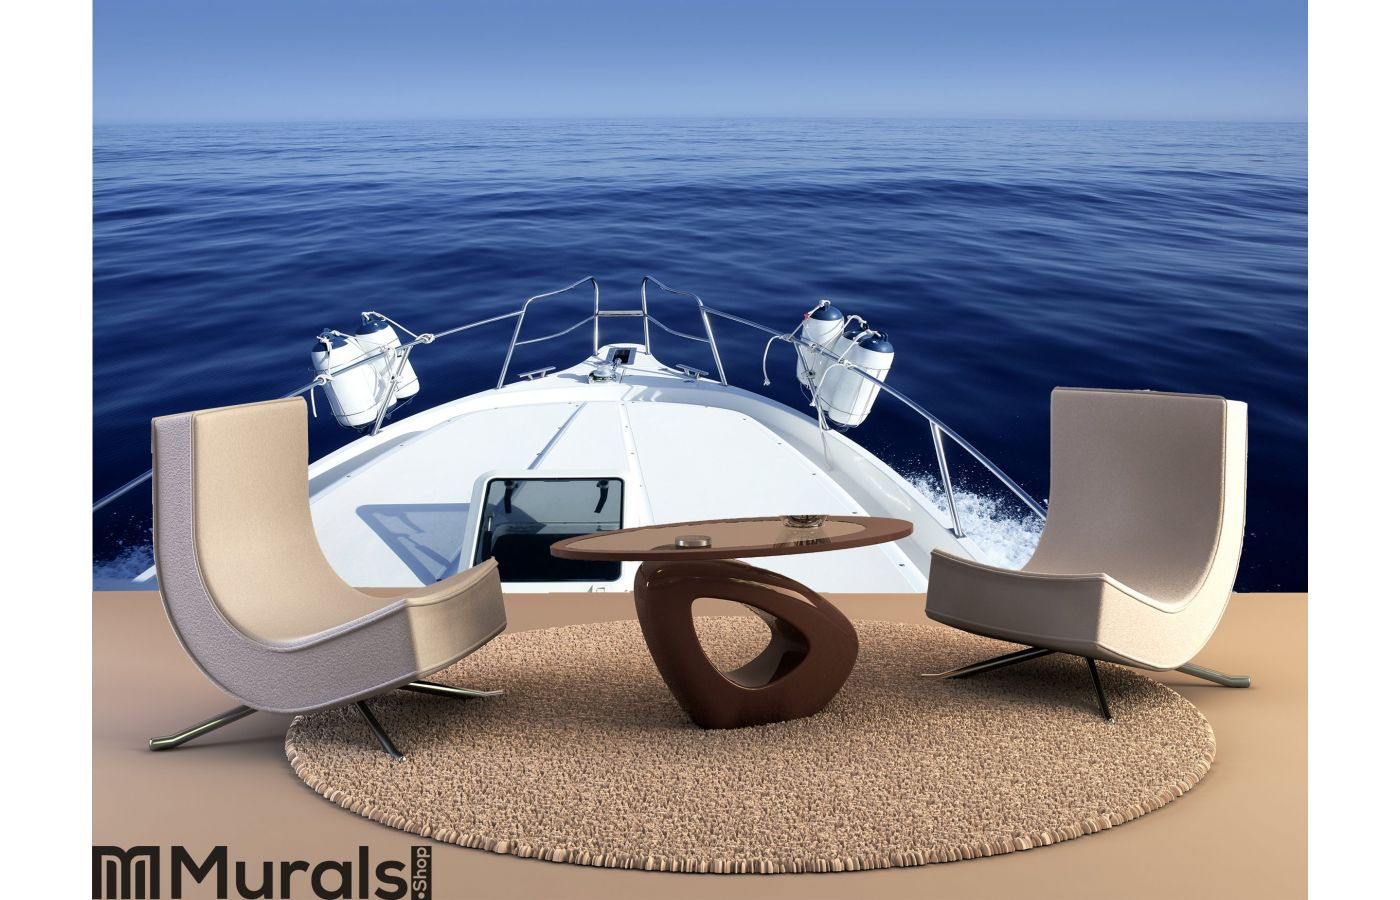 Boat On The Blue Mediterranean Sea Yachting Wall Mural